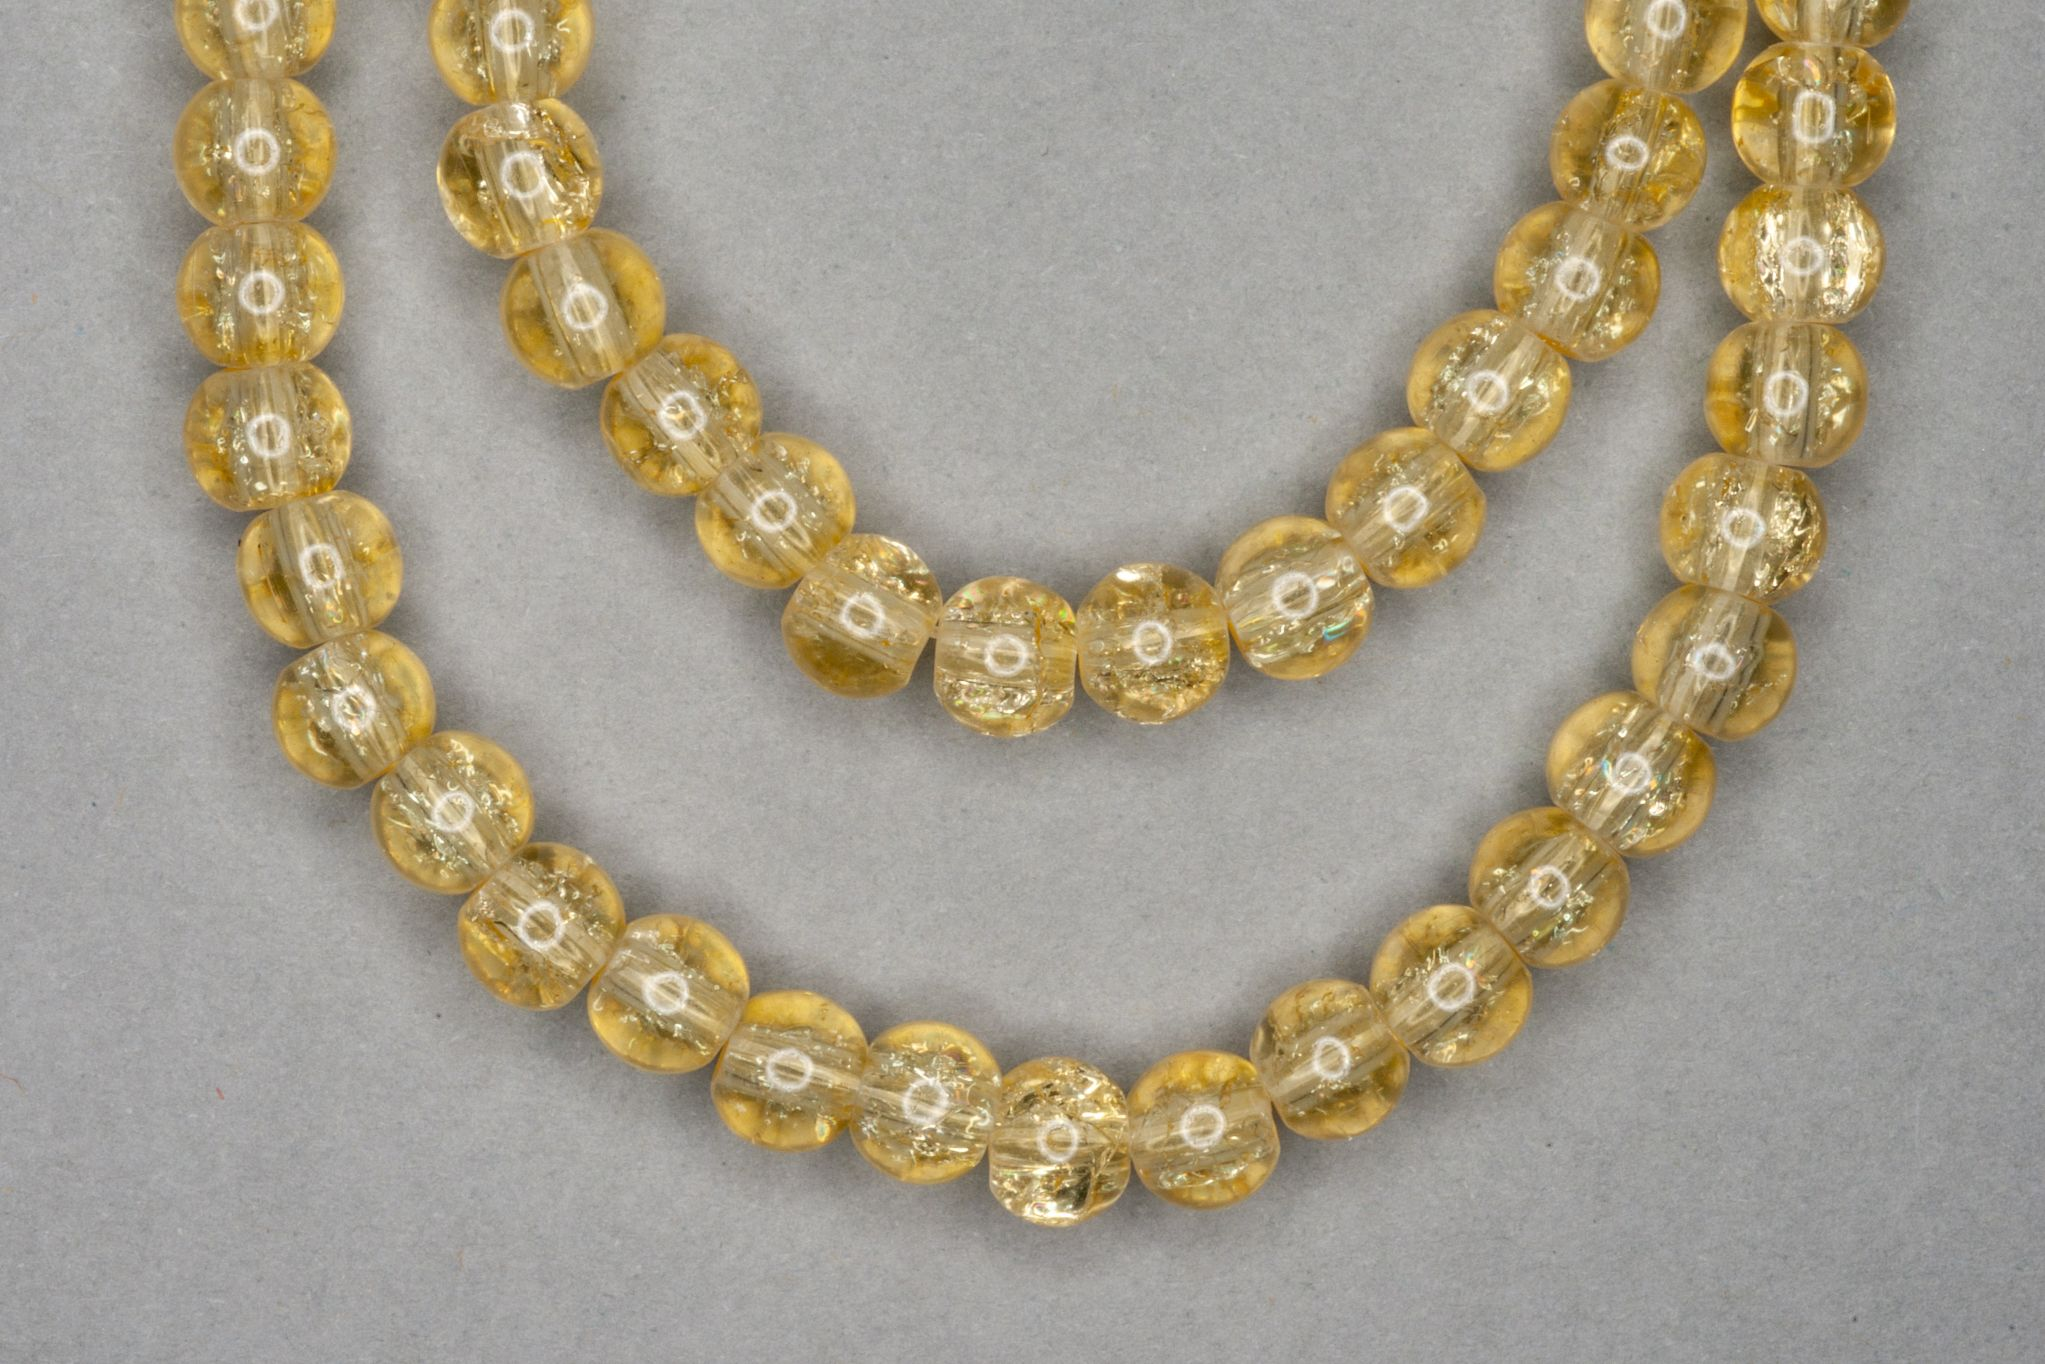 Lemon Crackle Glass Beads